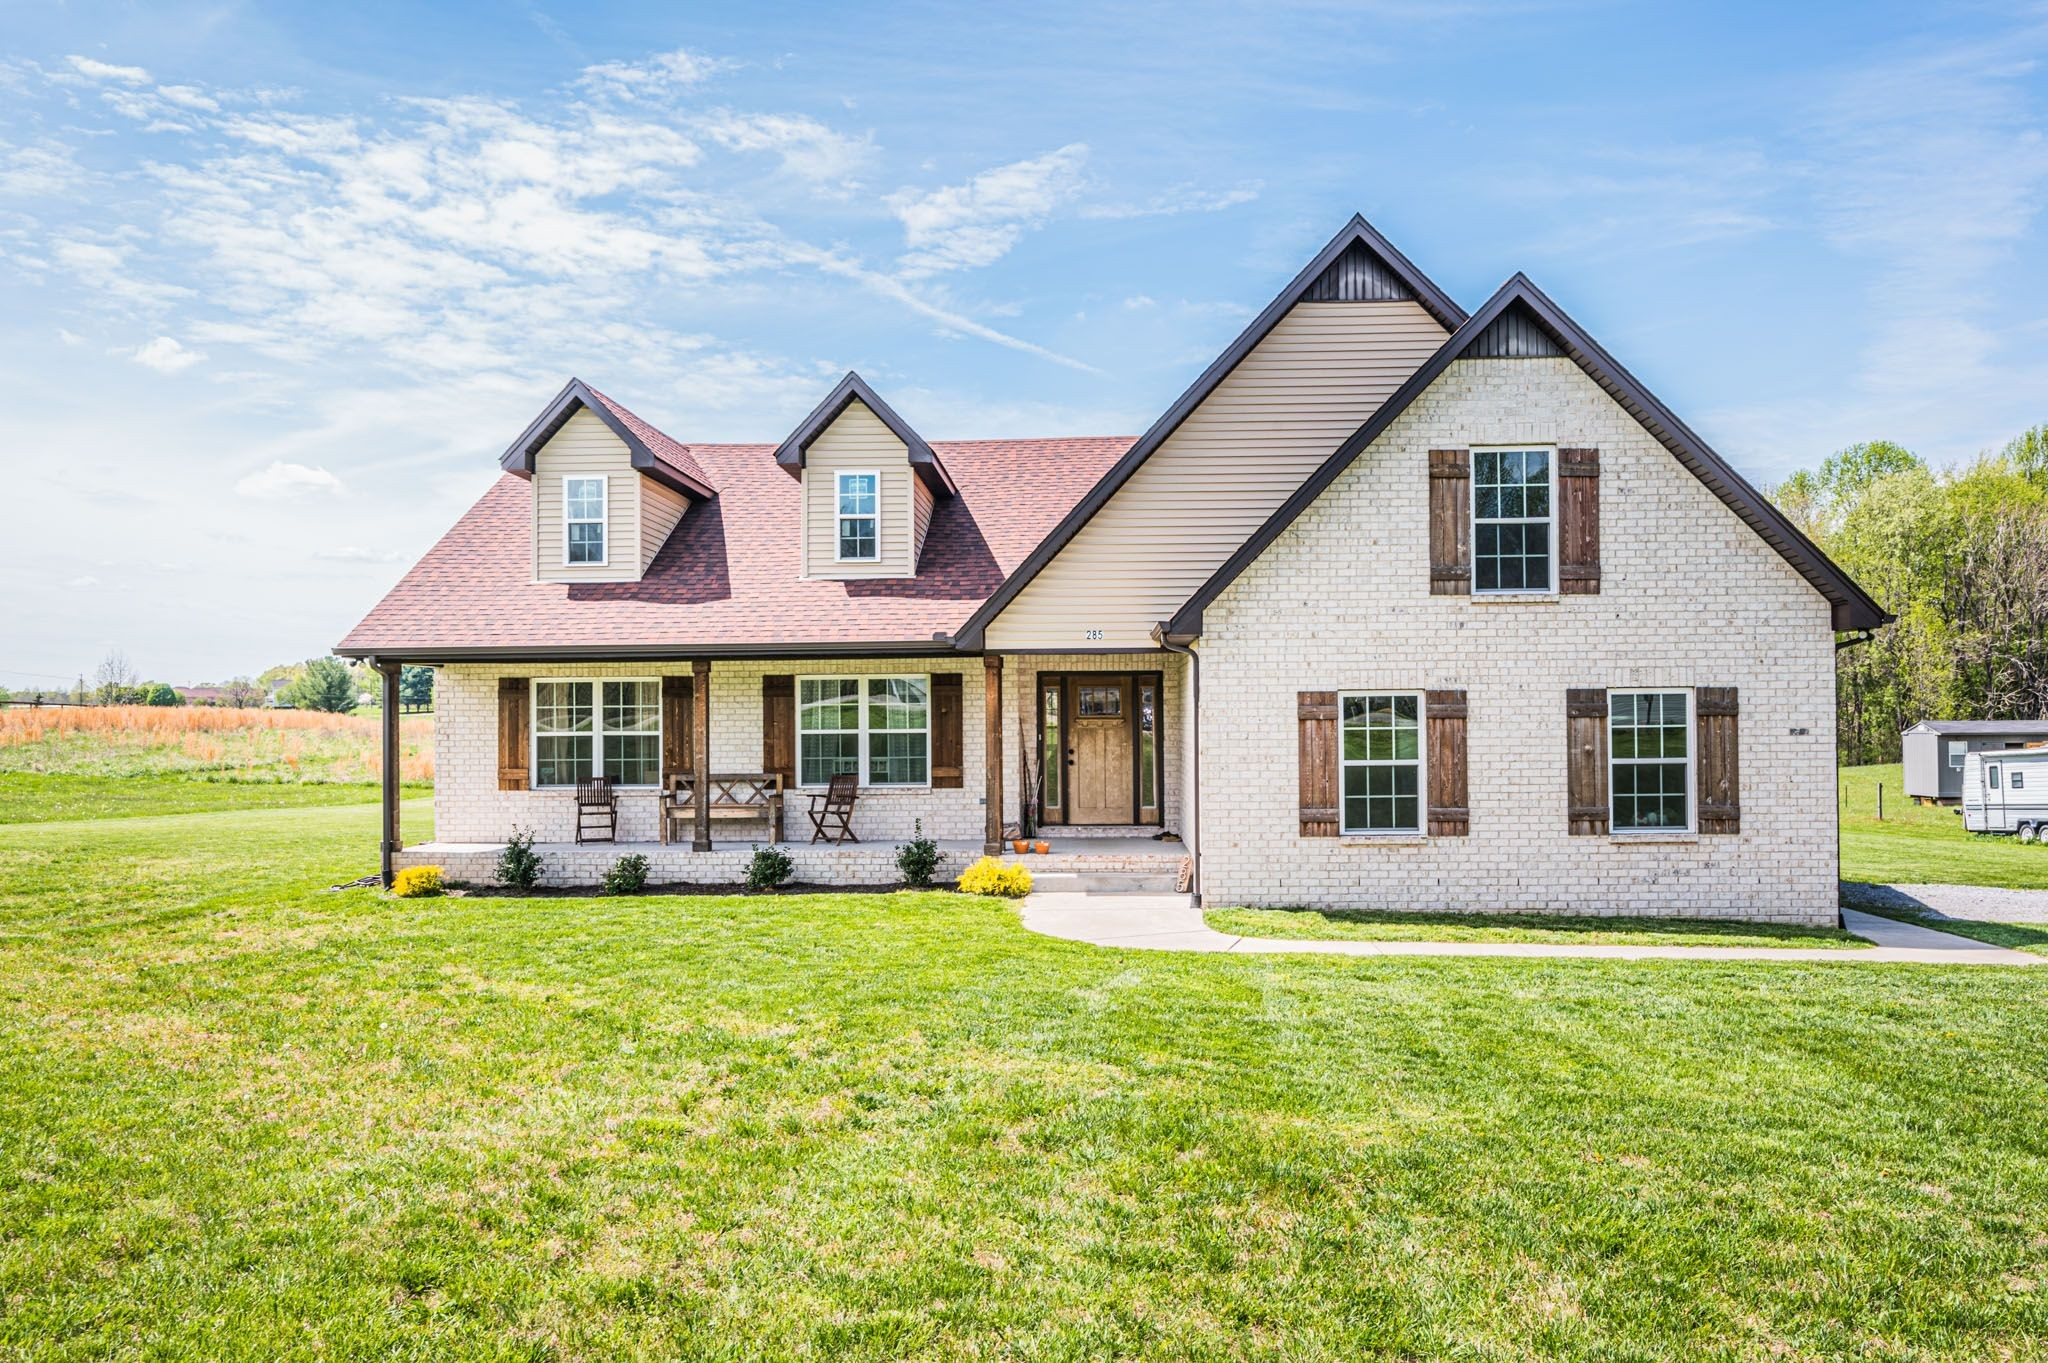 285 S Ray Rd Property Photo - Portland, TN real estate listing